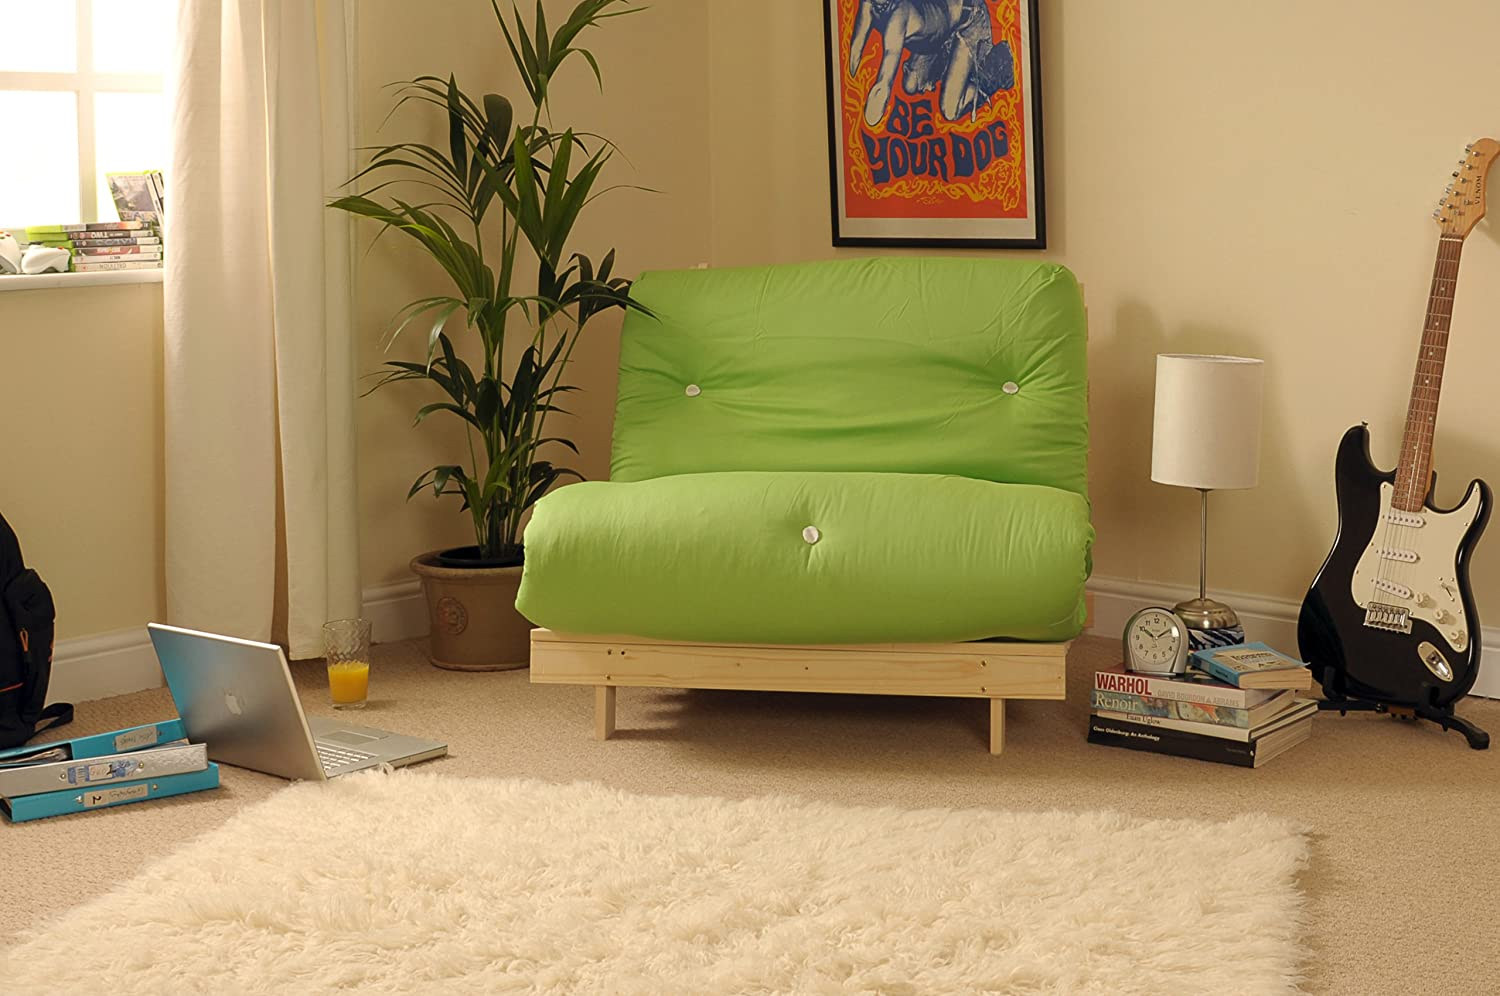 Comfy Living 2ft6 Small Single Wooden Futon Set LIME GREEN Mattress